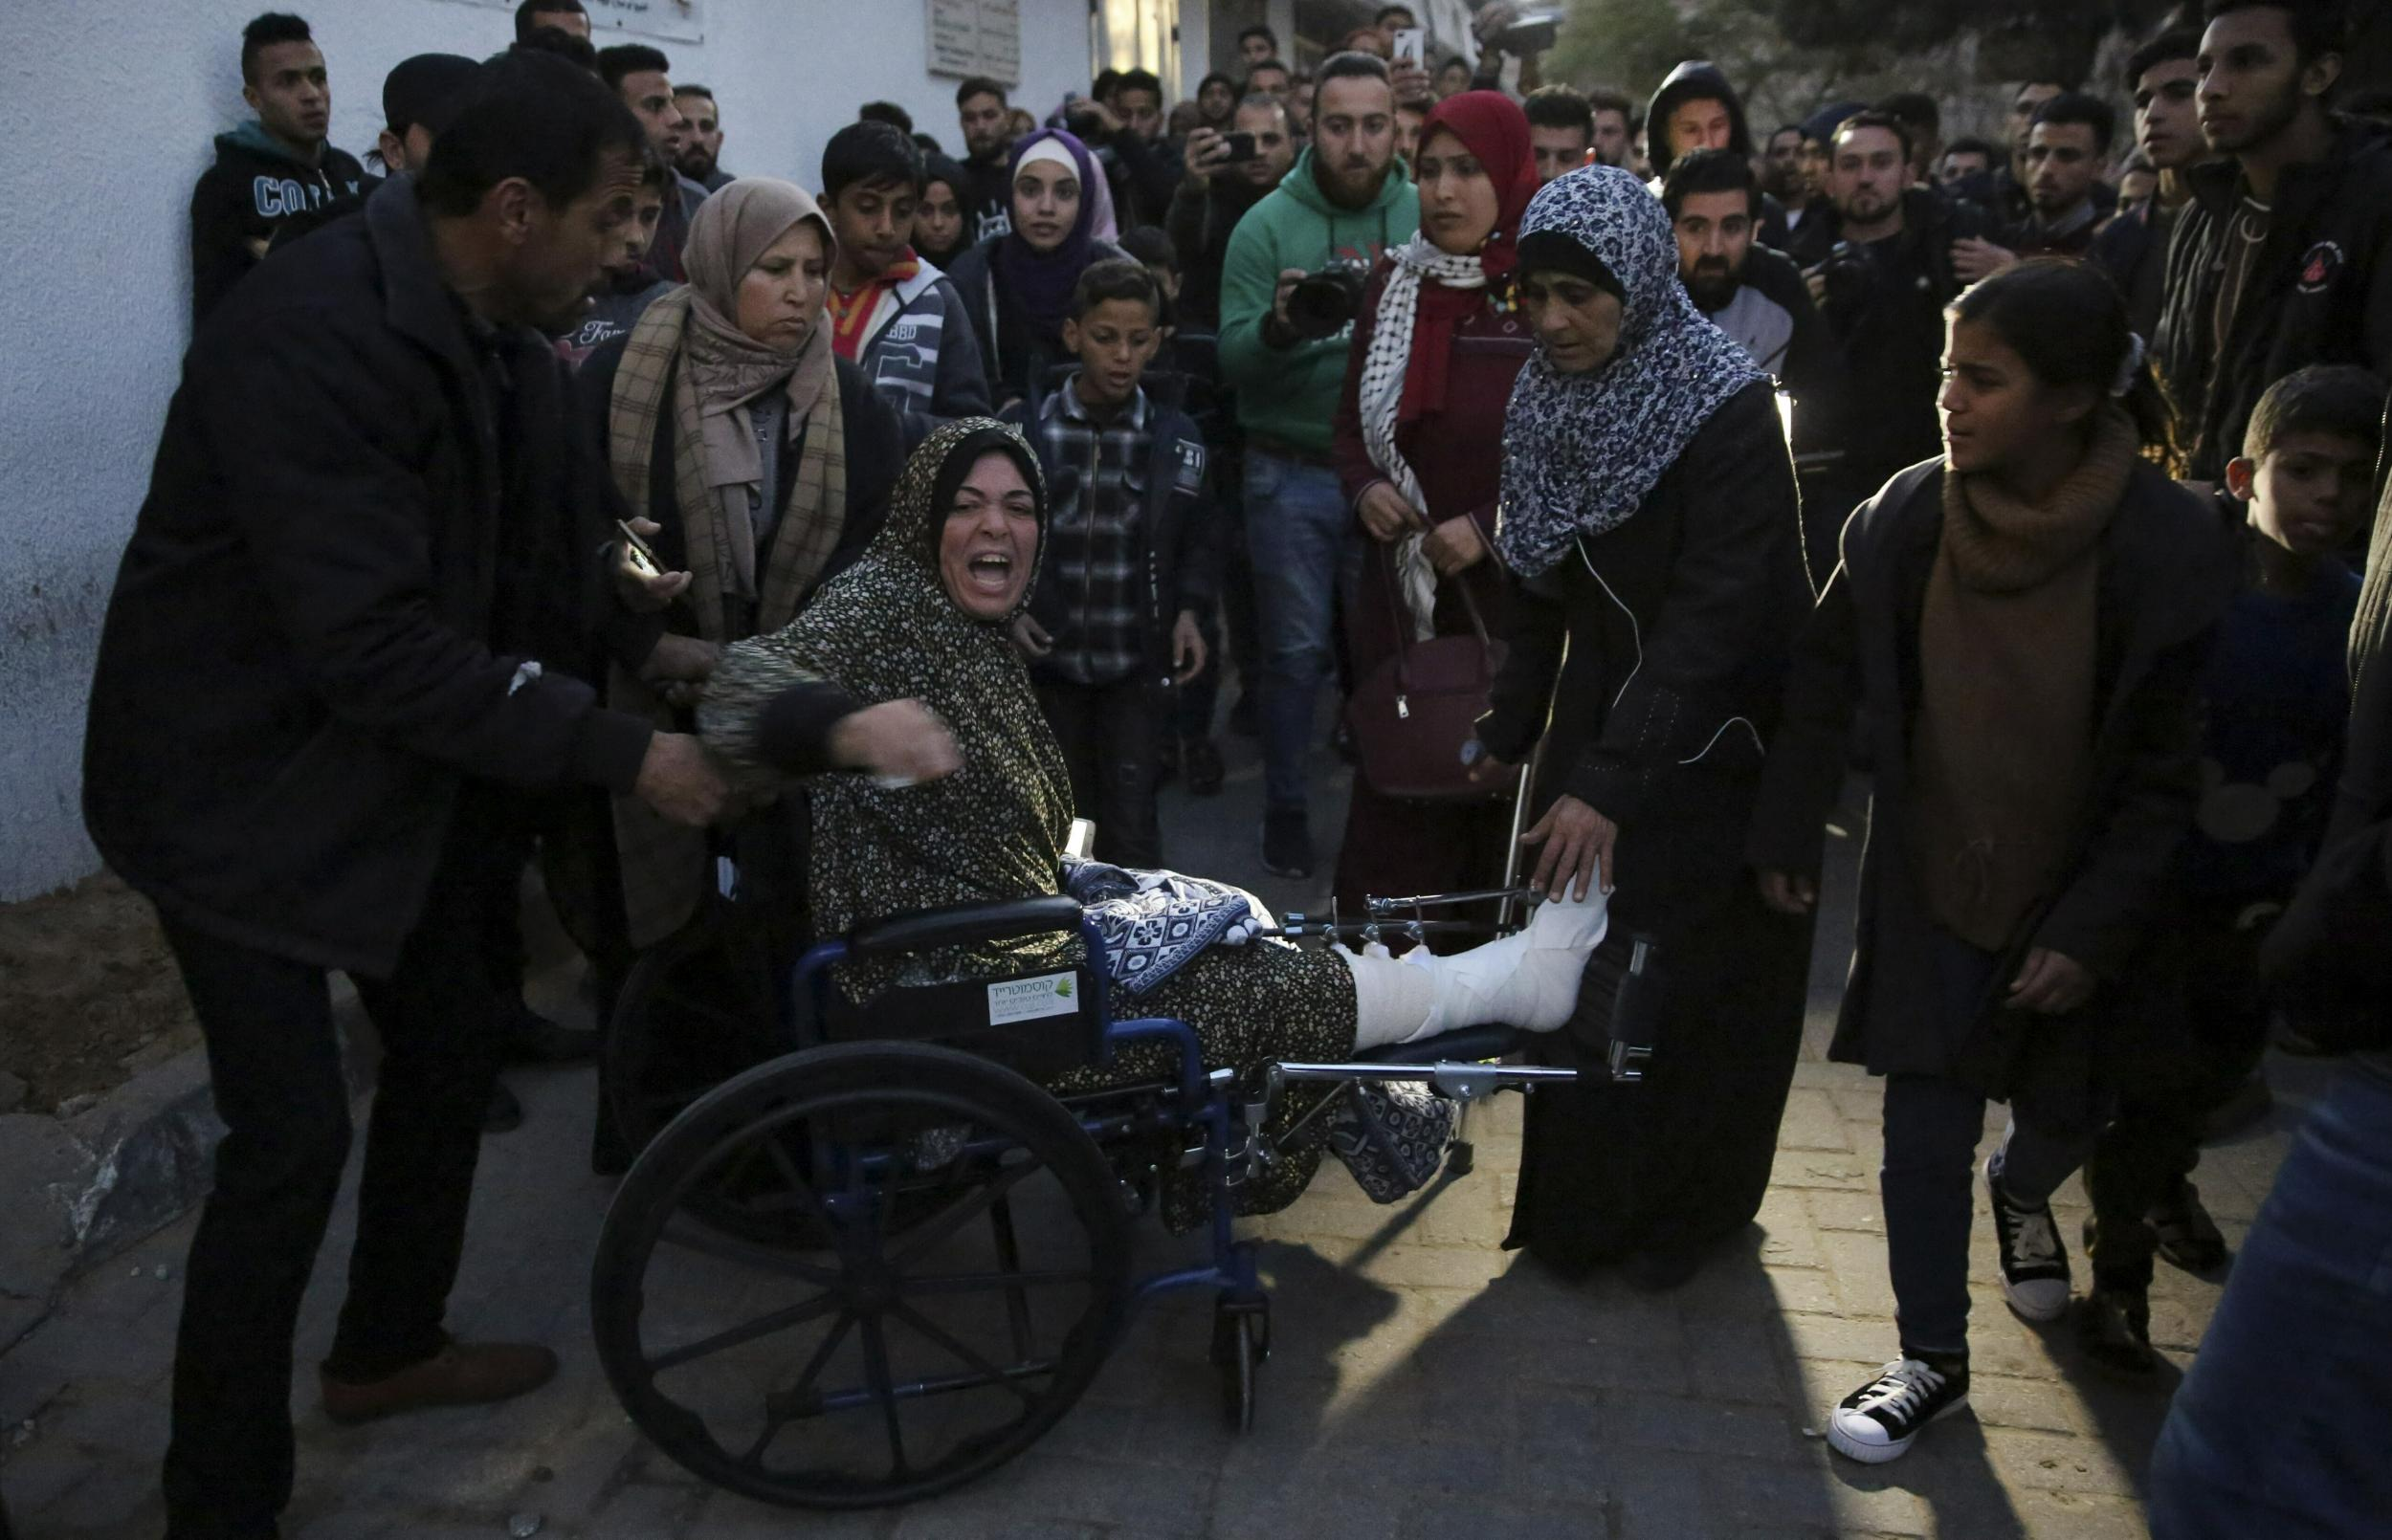 Gaza border protests: Palestinian woman killed as Israel launches airstrikes 'in response to violence'